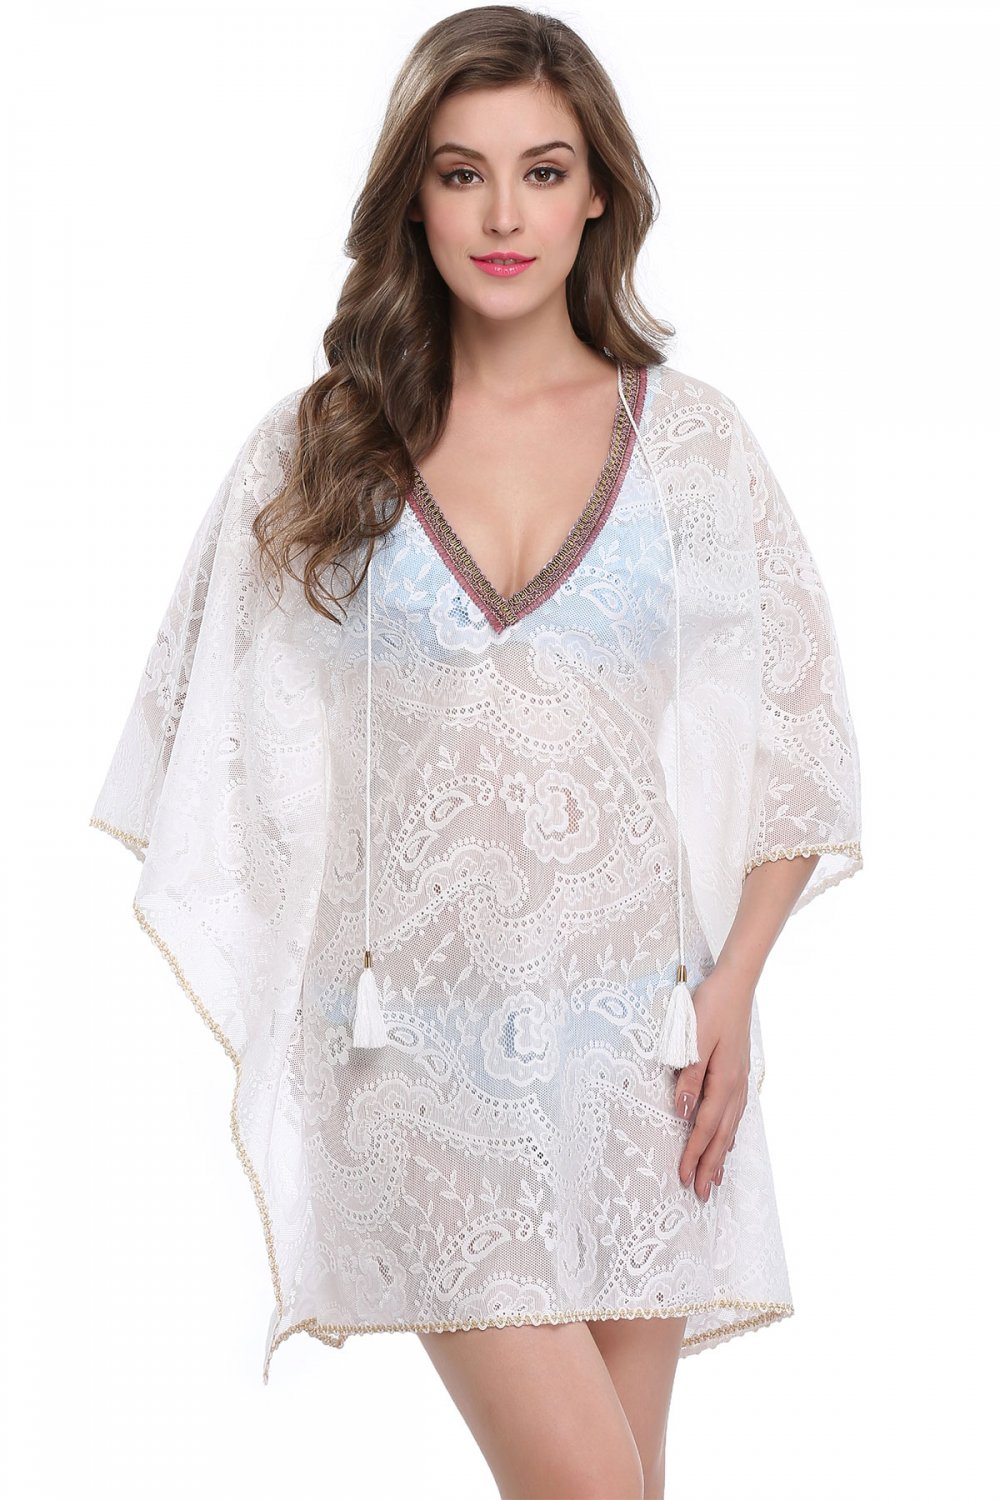 V Neckline White S-XL Size Drape Sleeves Fashion Floral Lace Print Beach Dress W351026